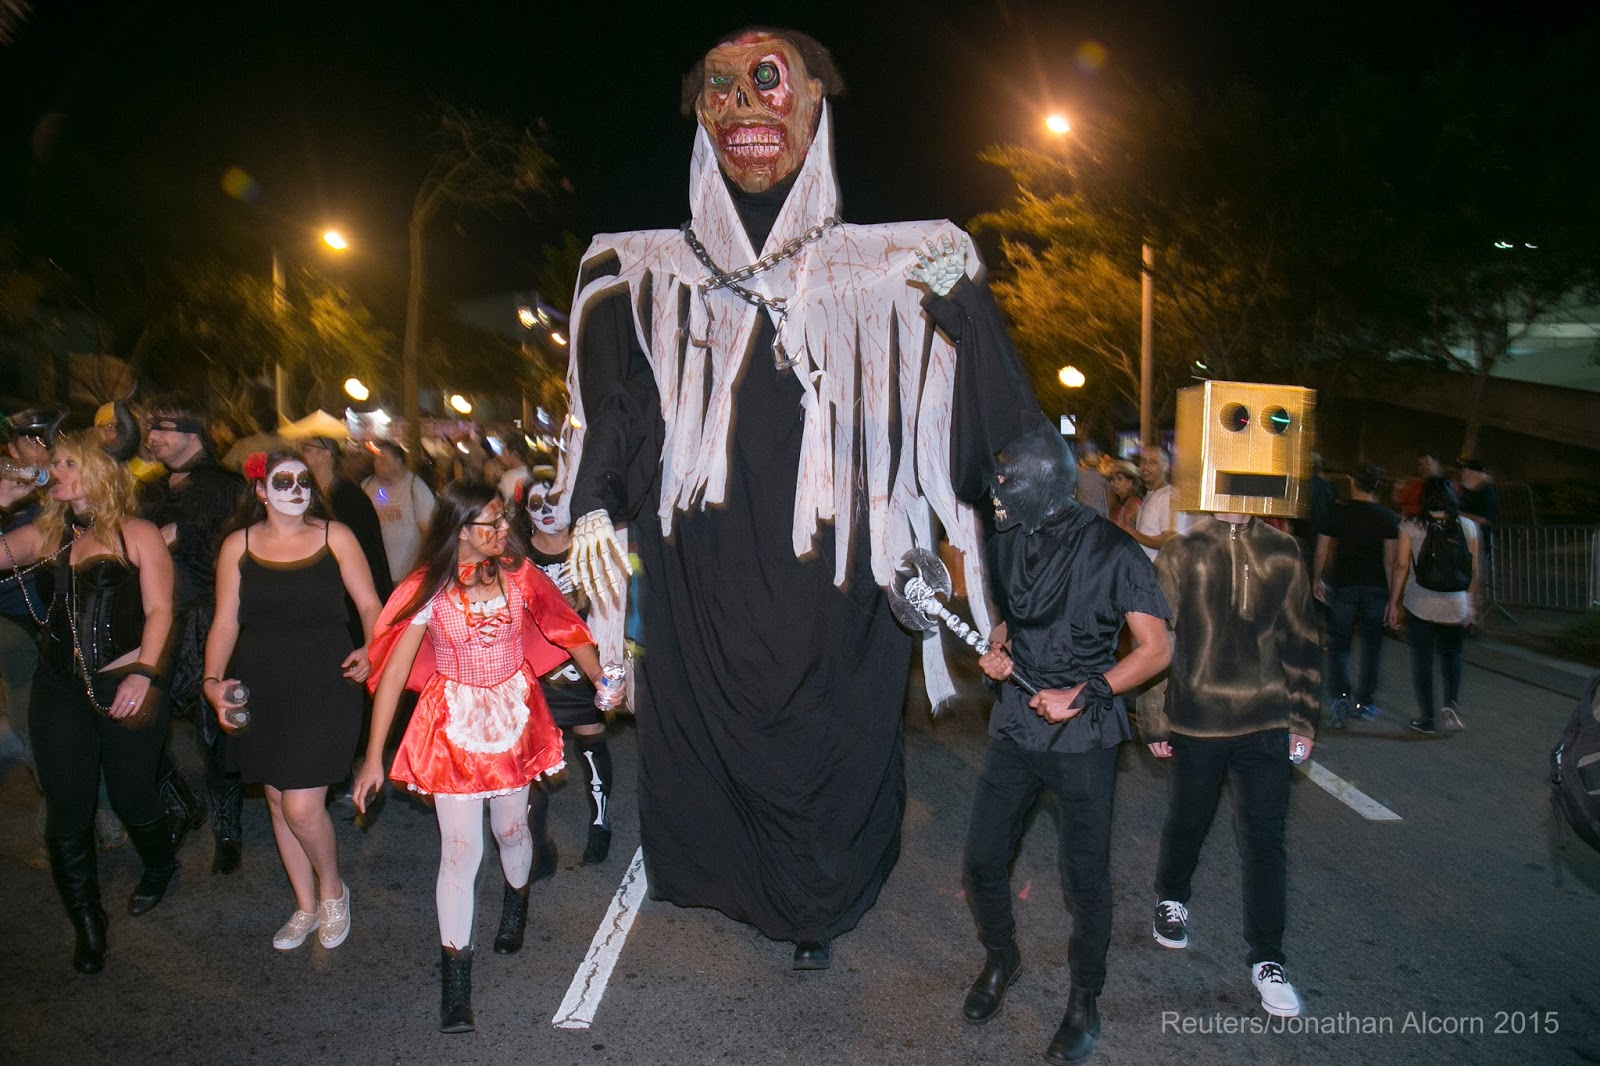 l a t i t u d e: photos! 2015 west hollywood halloween carnaval and